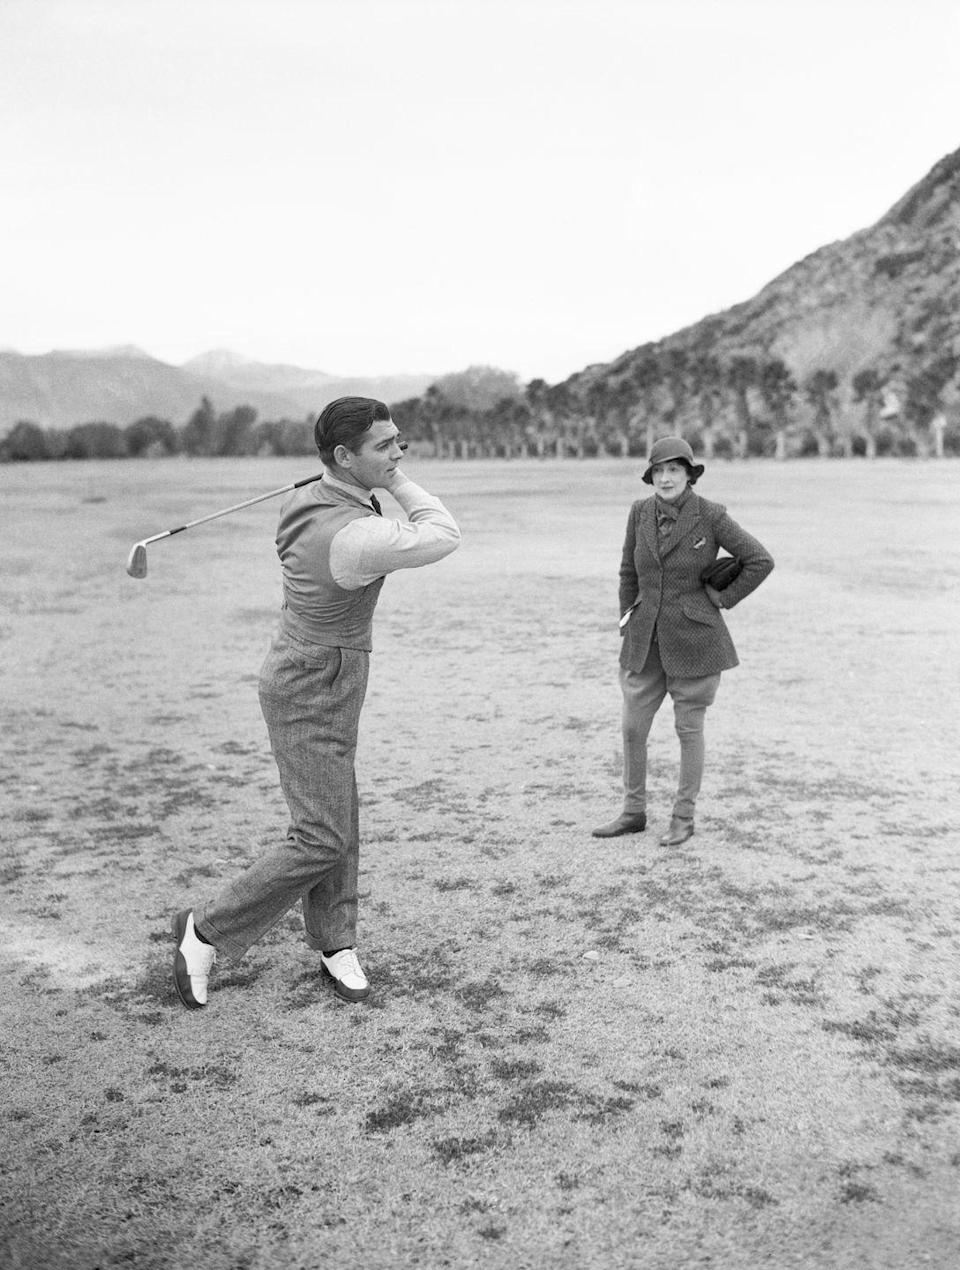 <p>The actor – who later went on to star in <em>Gone with the Wind, </em>one of the highest-grossing films in box office history – practices his golf game on December 19, 1932. Gable was approximately 31-years-old at the time that this picture was taken. </p>